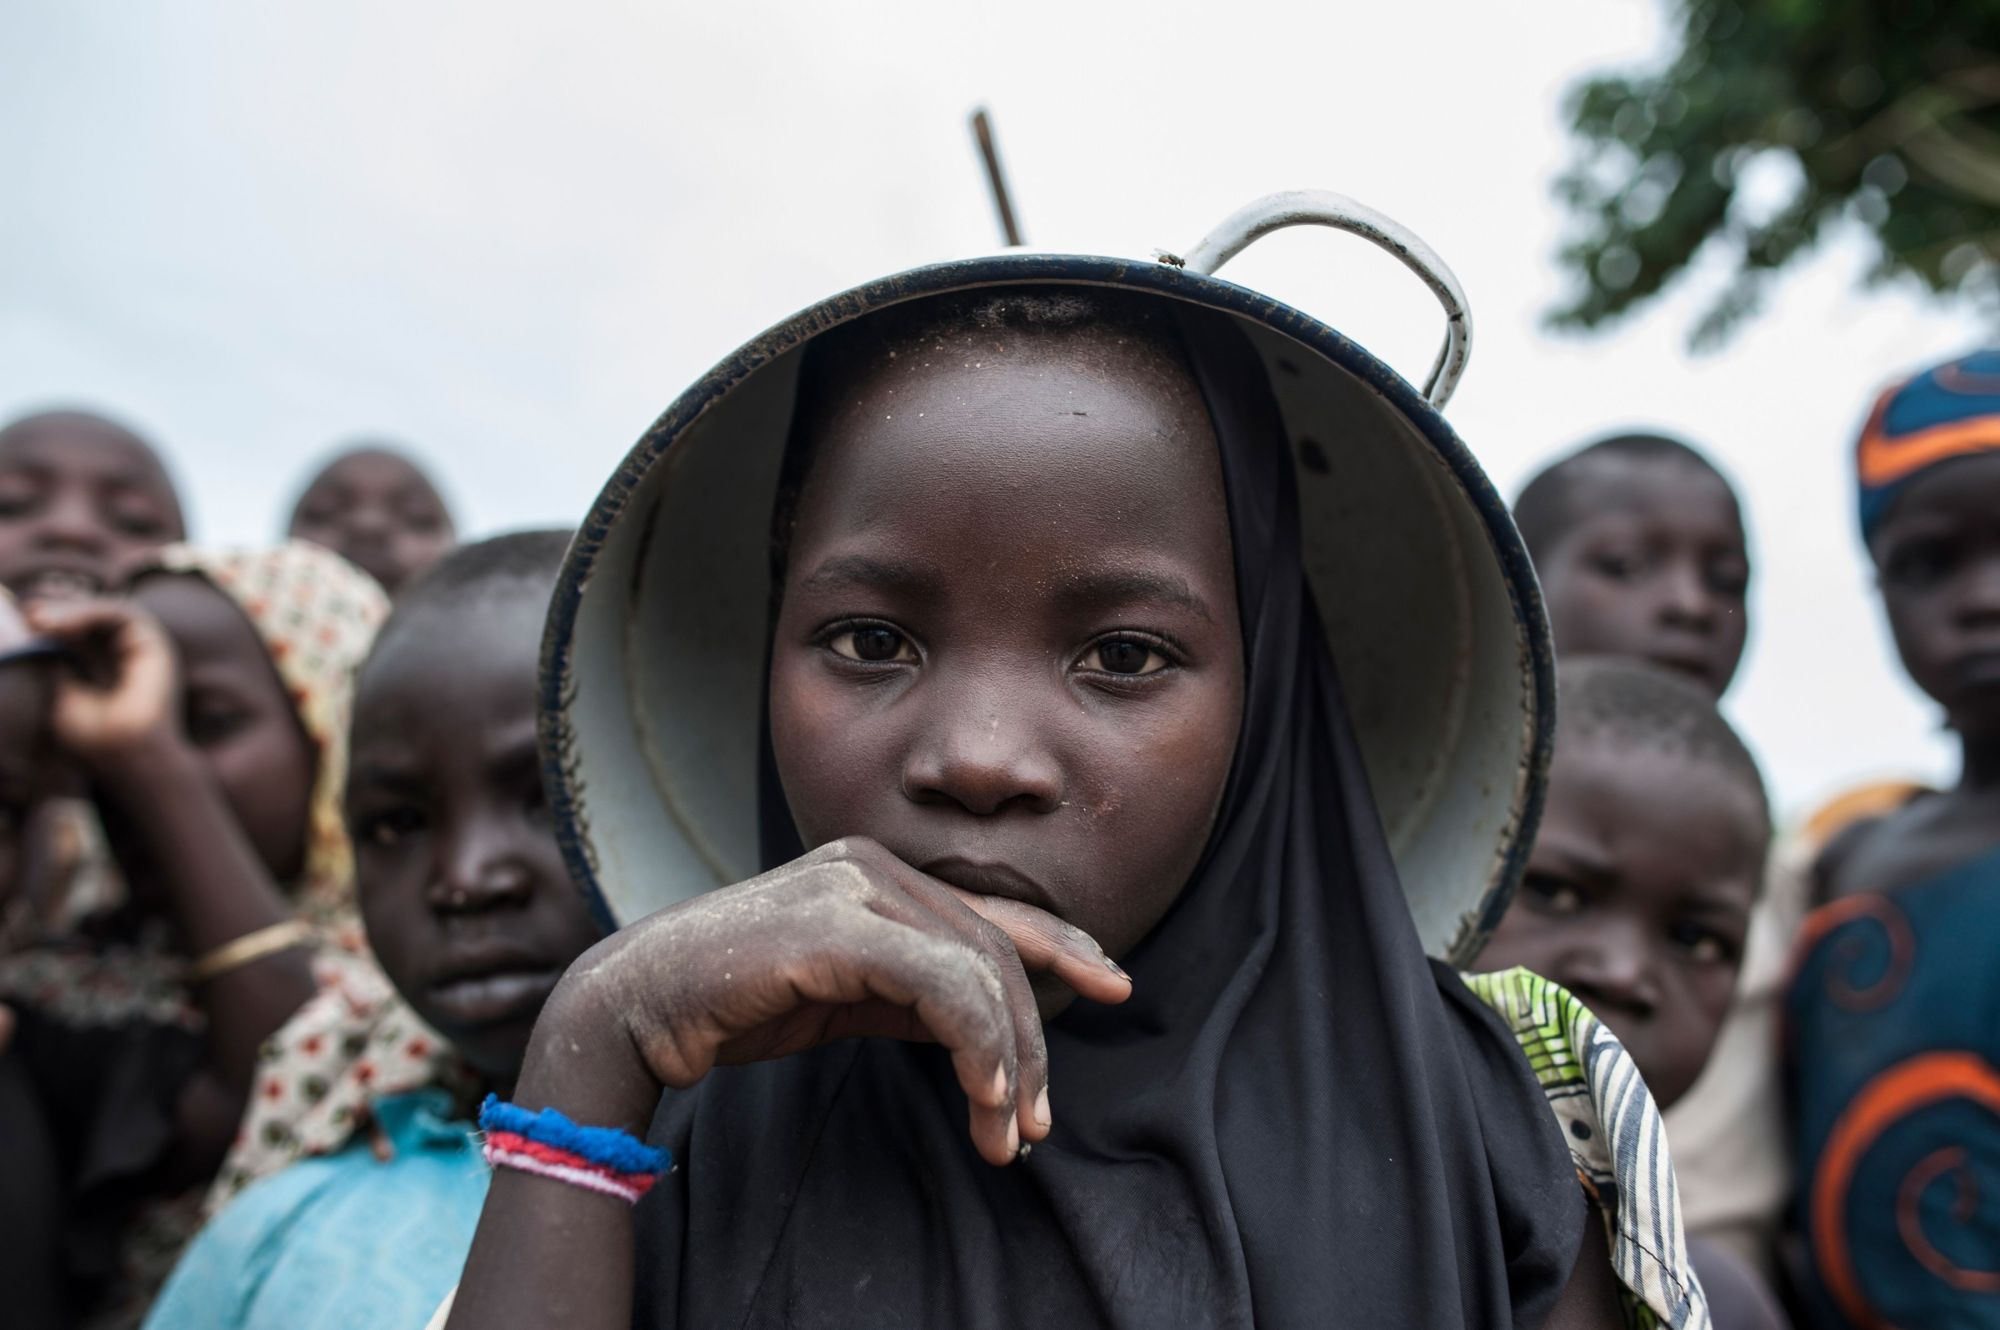 A girl using a pot as a hat poses with other children on Tuesday at a camp for internally displaced people in Gwoza, northeastern Nigeria. Boko Haram seized Gwoza in July 2014. It was retaken by Nigerian troops in March 2015, but extremists continued to raid nearby villages.   AFP-JIJI